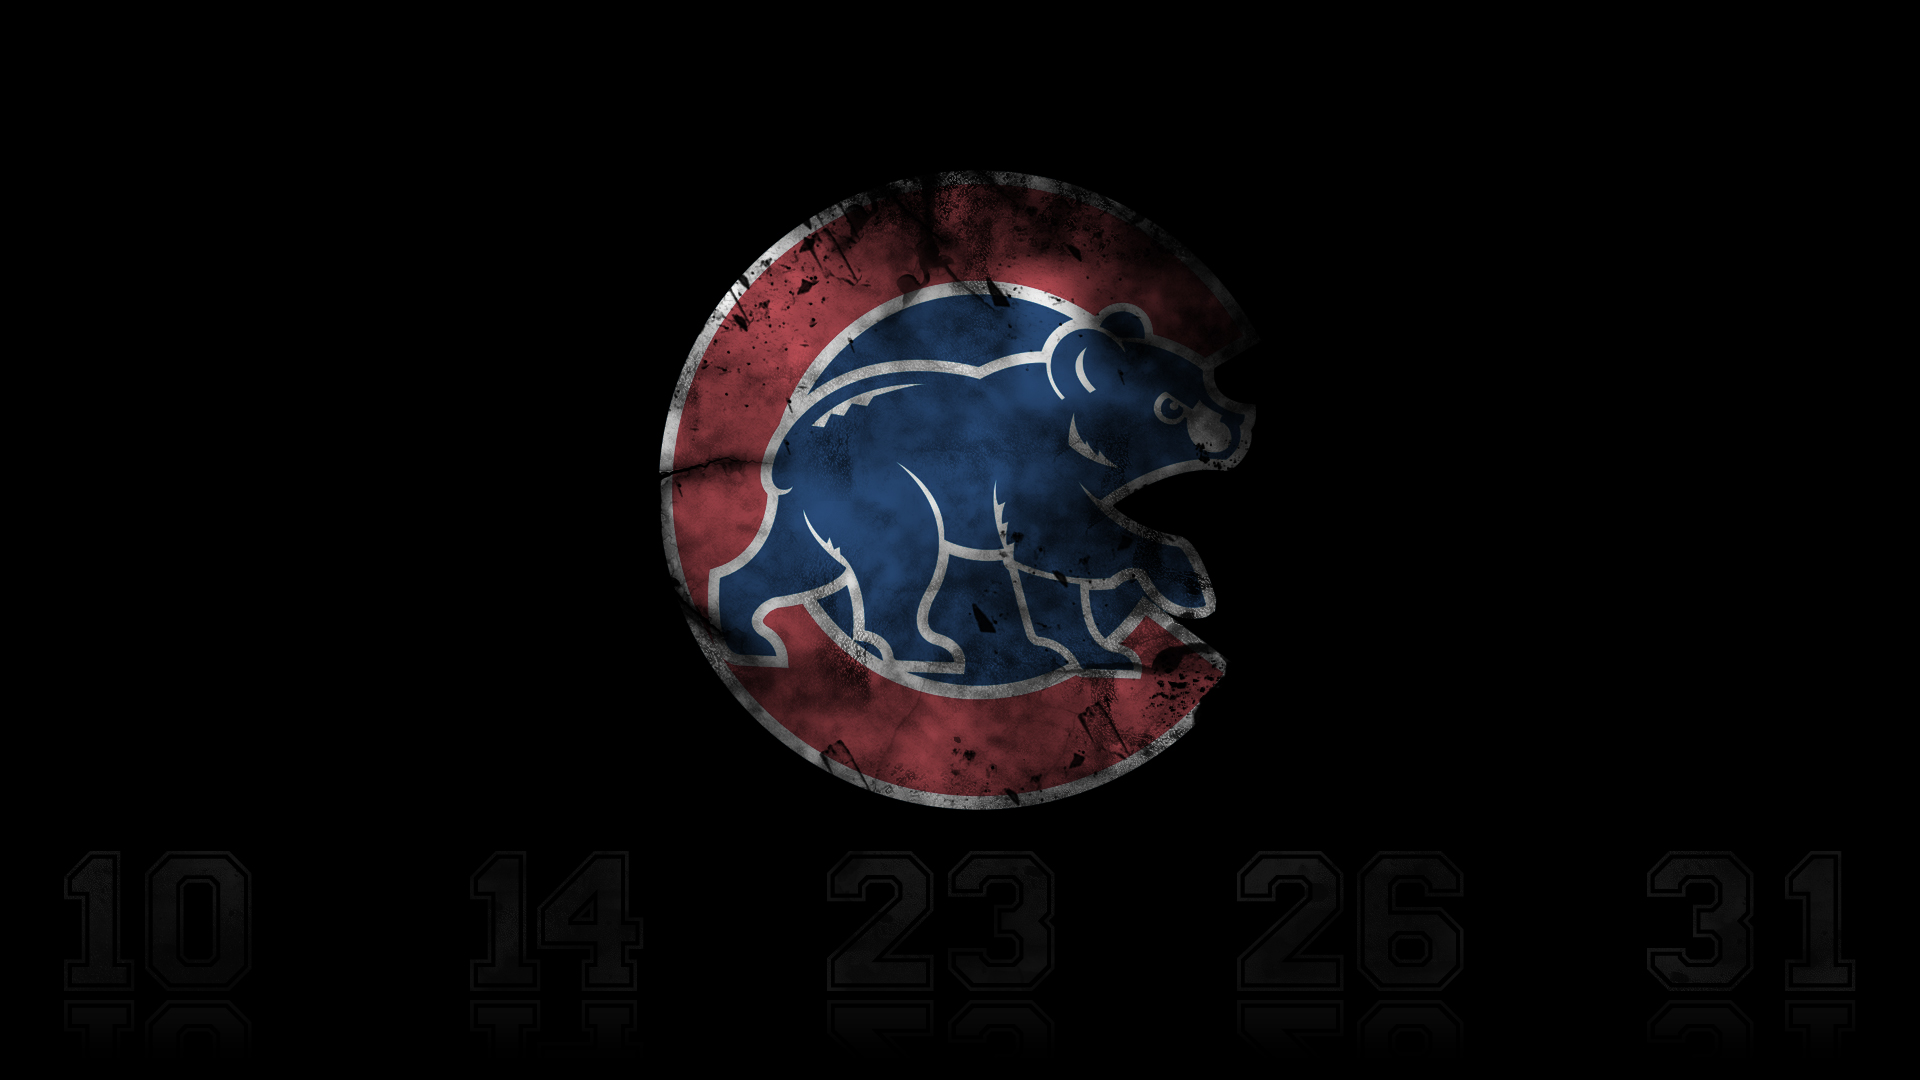 1920x1080 - Chicago Cubs Wallpapers 22